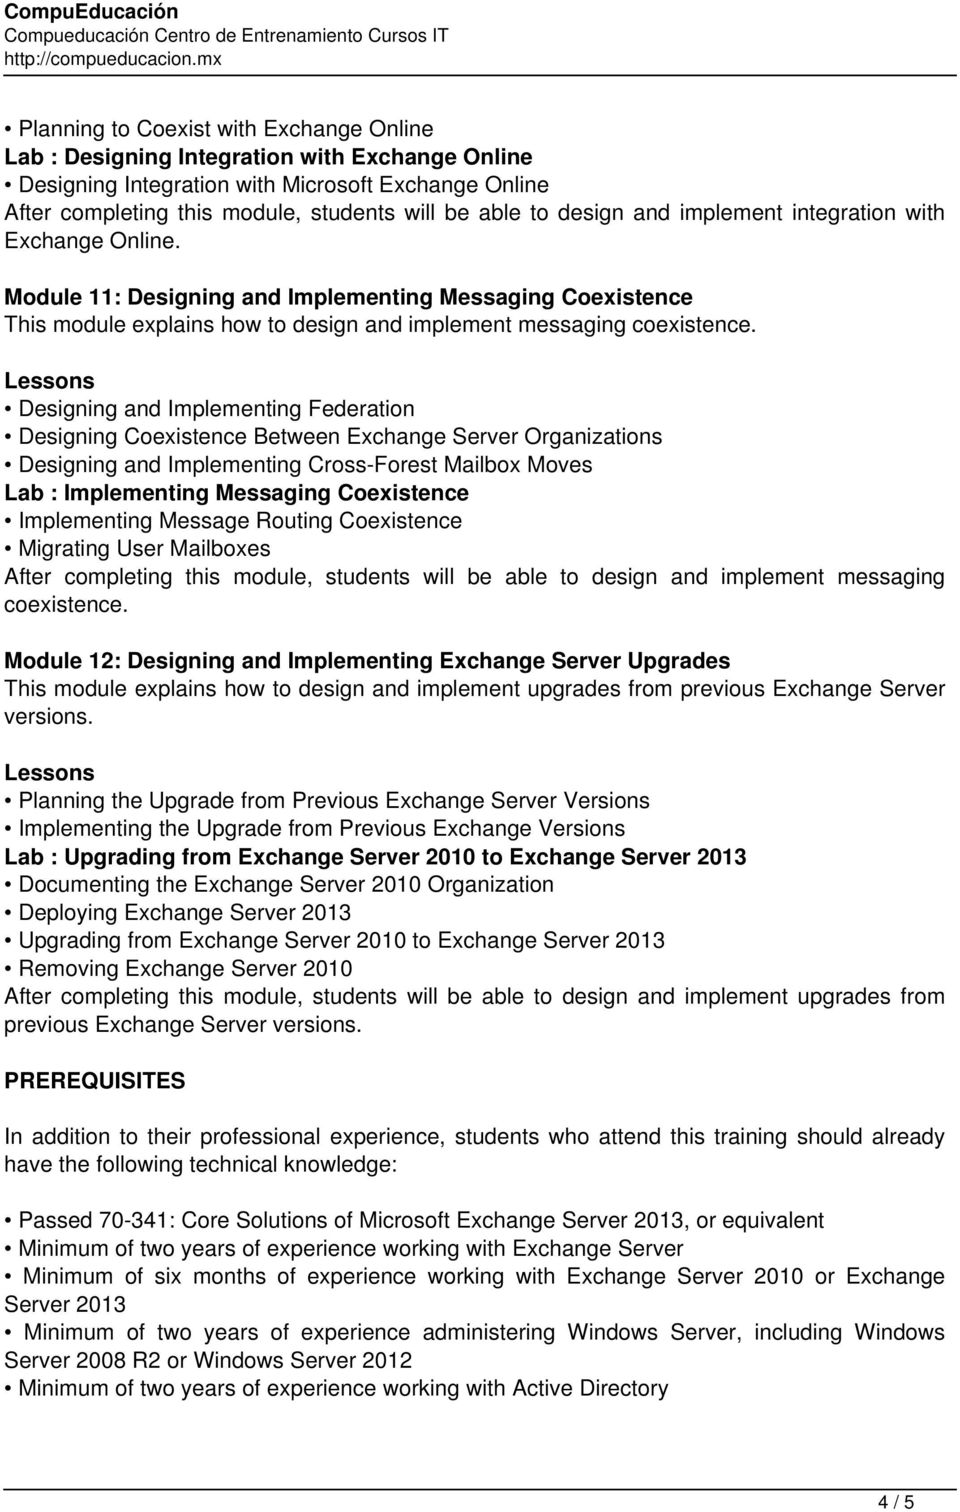 Designing and Implementing Federation Designing Coexistence Between Exchange Server Organizations Designing and Implementing Cross-Forest Mailbox Moves Lab : Implementing Messaging Coexistence